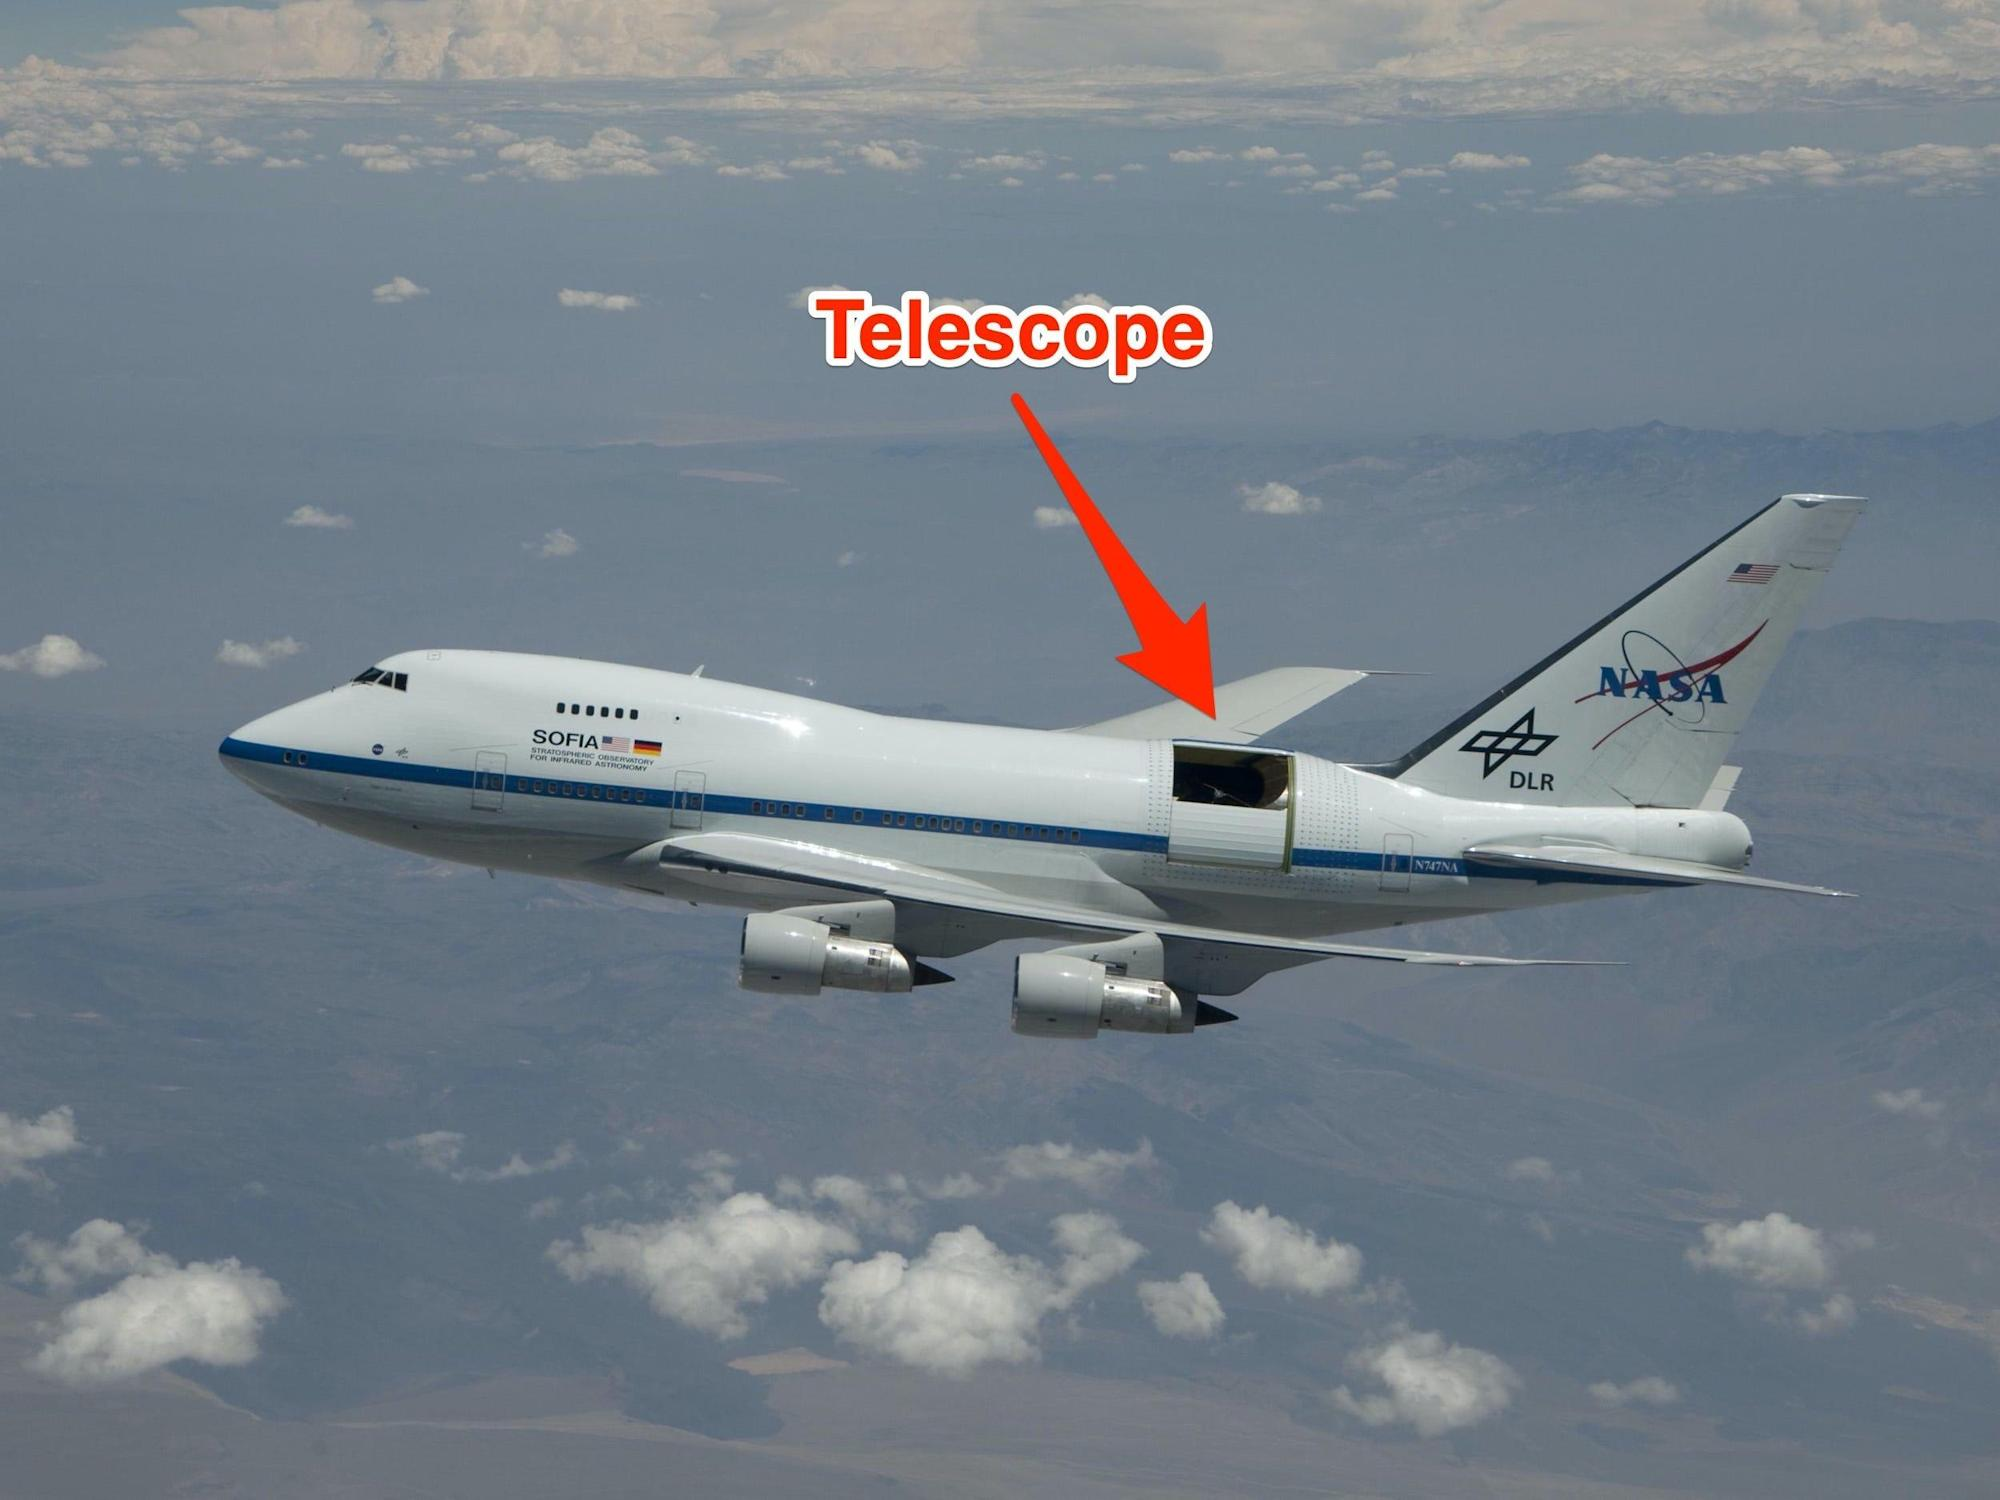 NASA used a Boeing 747 rigged with a massive telescope to discover water on the moon — take a look at SOFIA